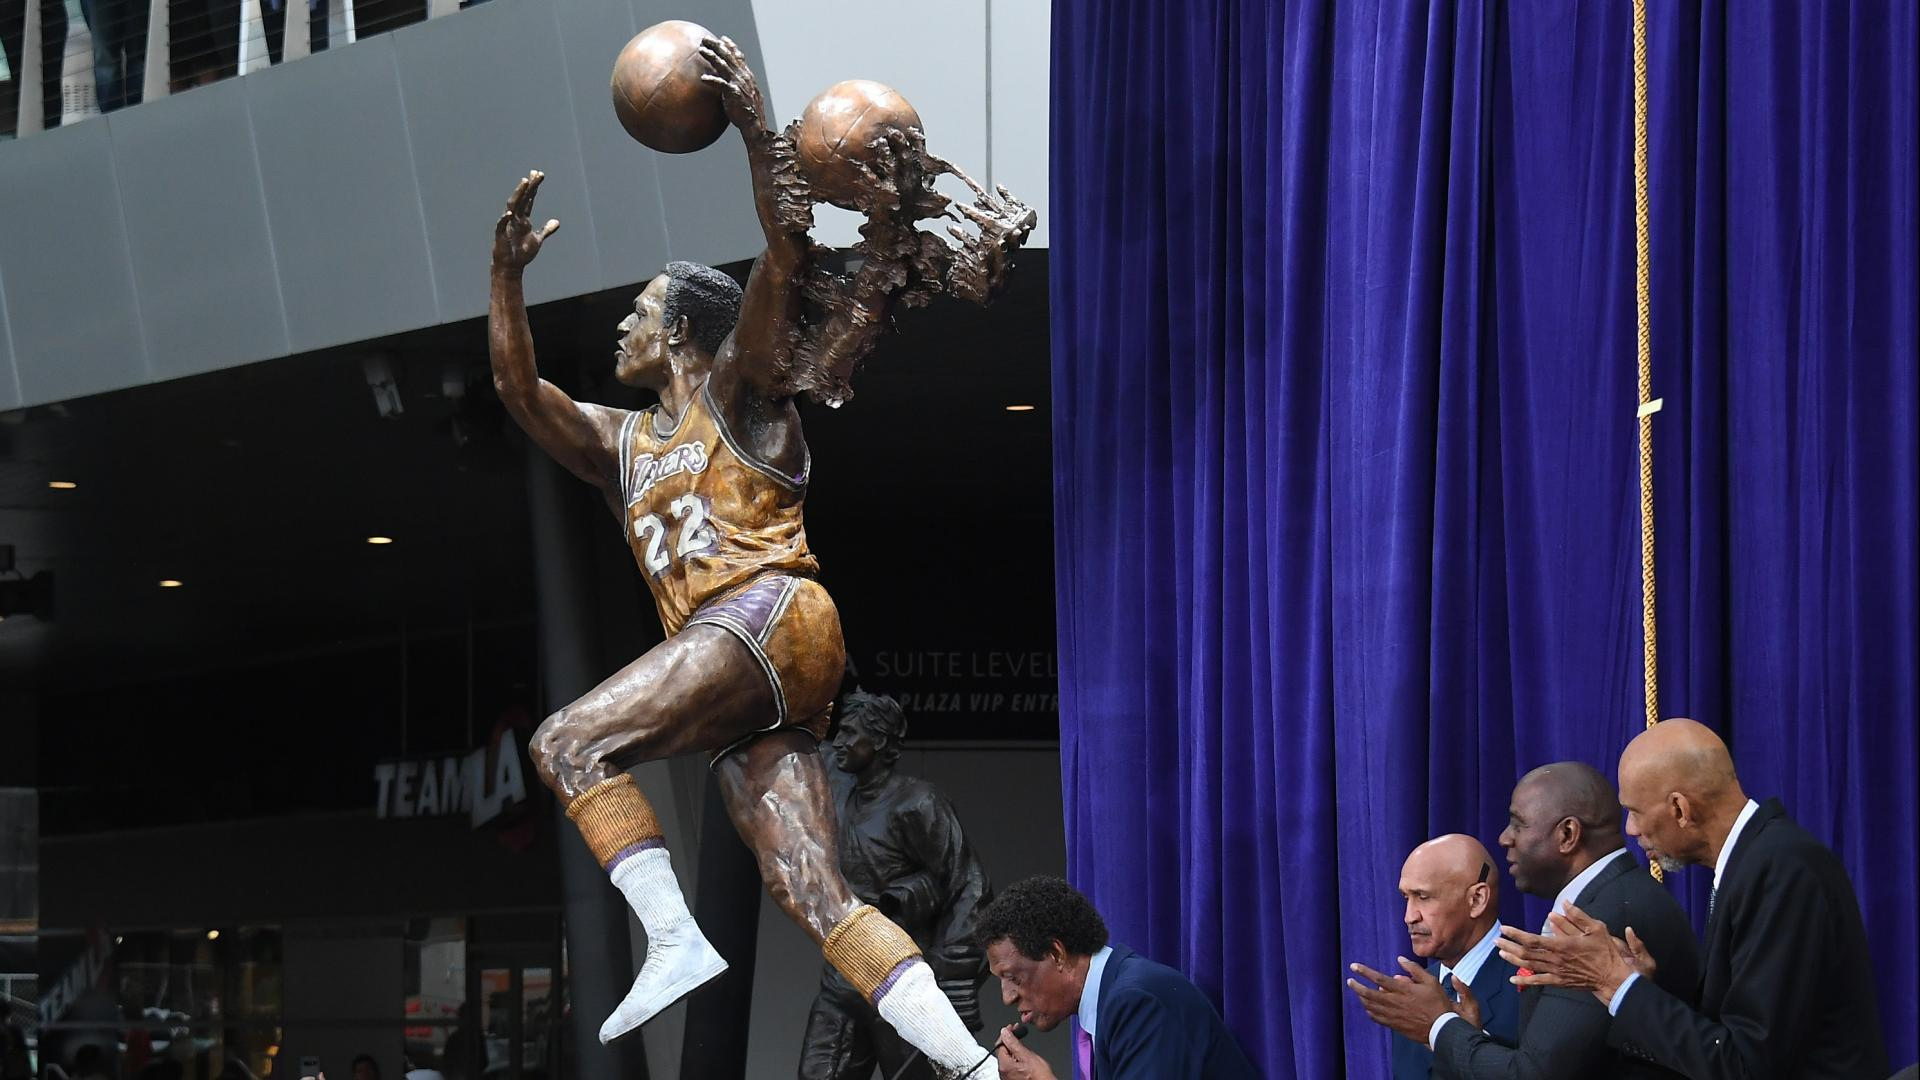 Lakers unveil statue of Elgin Baylor outside Staples Center